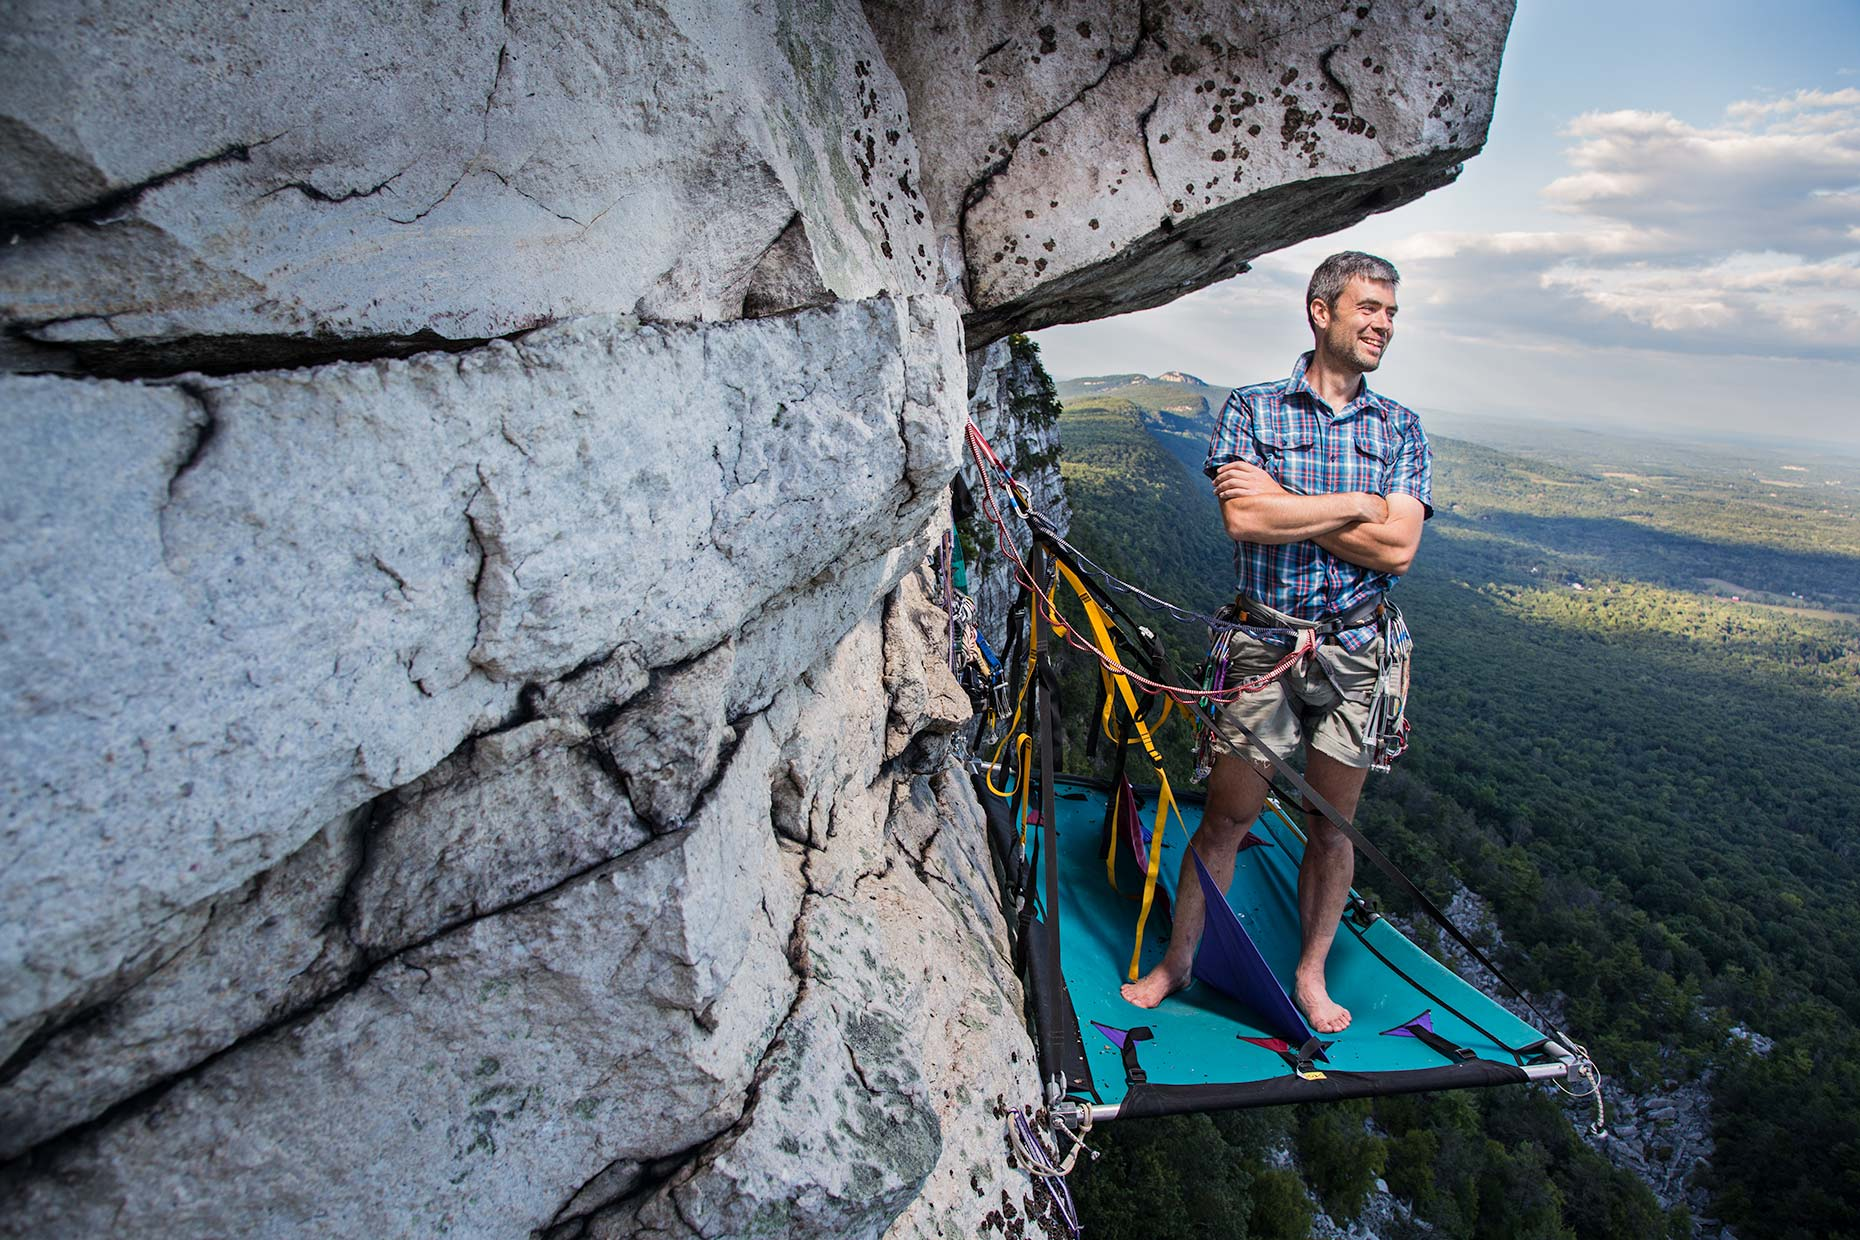 A confident portrait of a rock climber standing on a hanging ledge on a cliff in New york